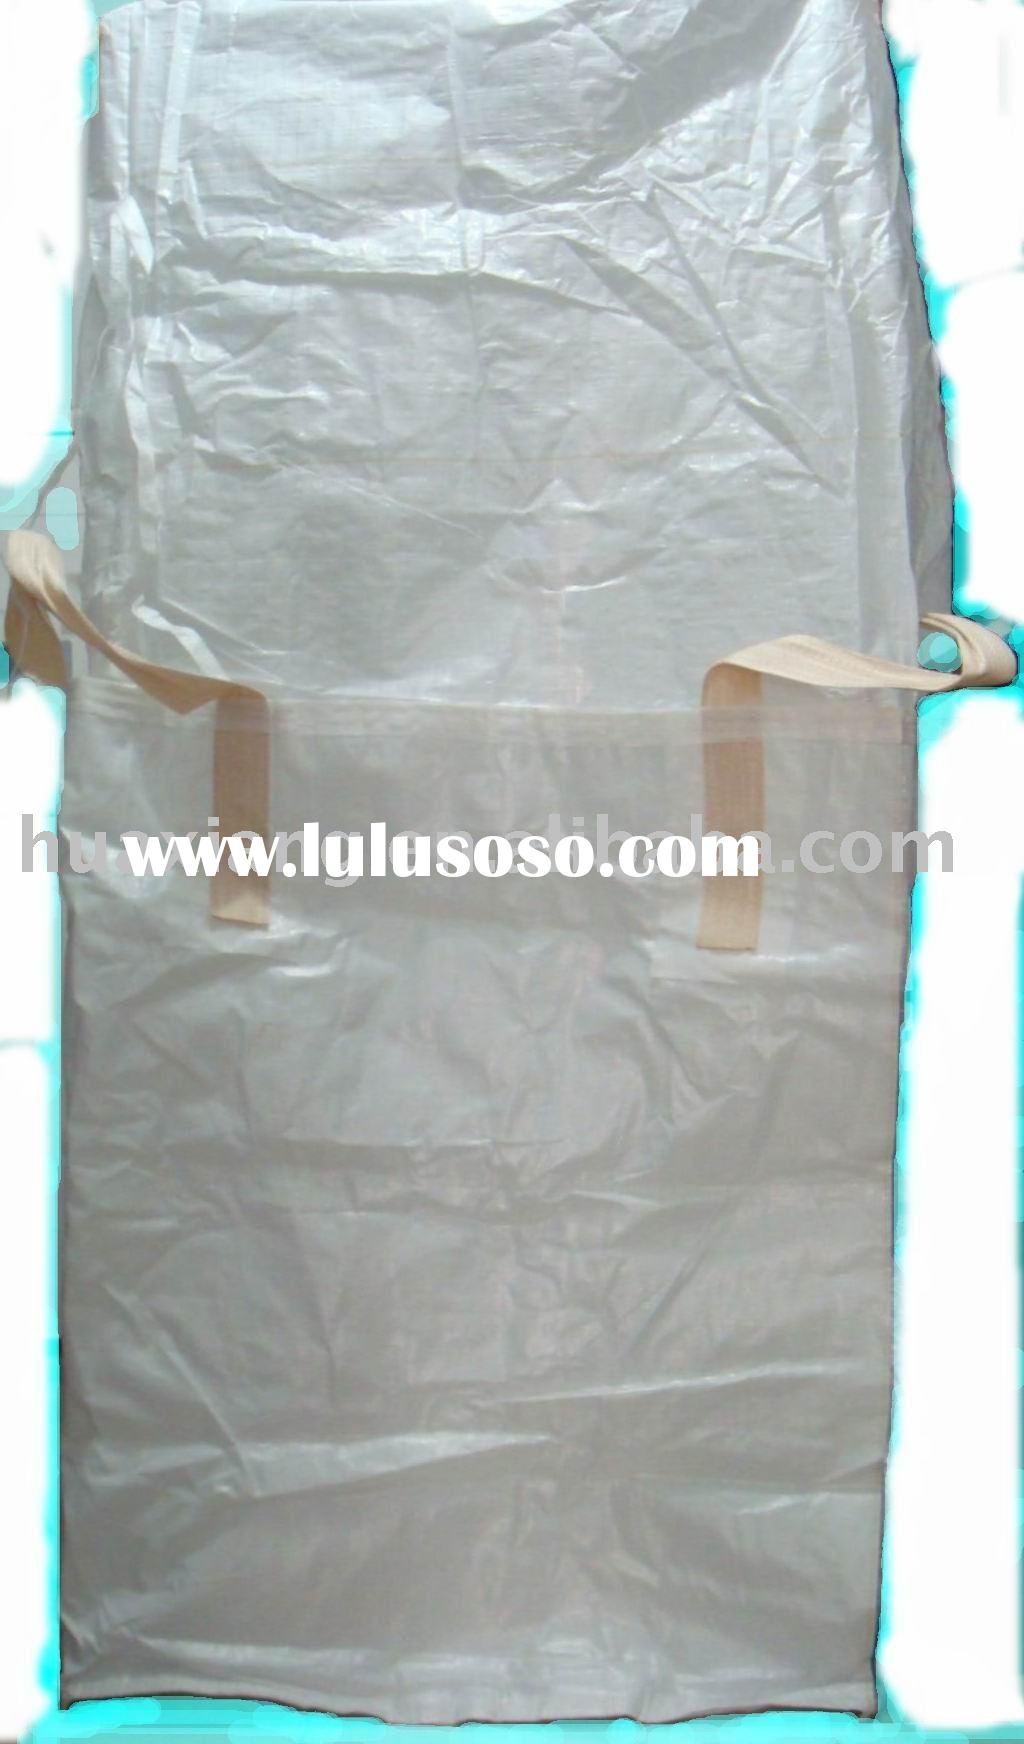 PP 1 ton bulk bag,for carrying iron ore,good quality,low price